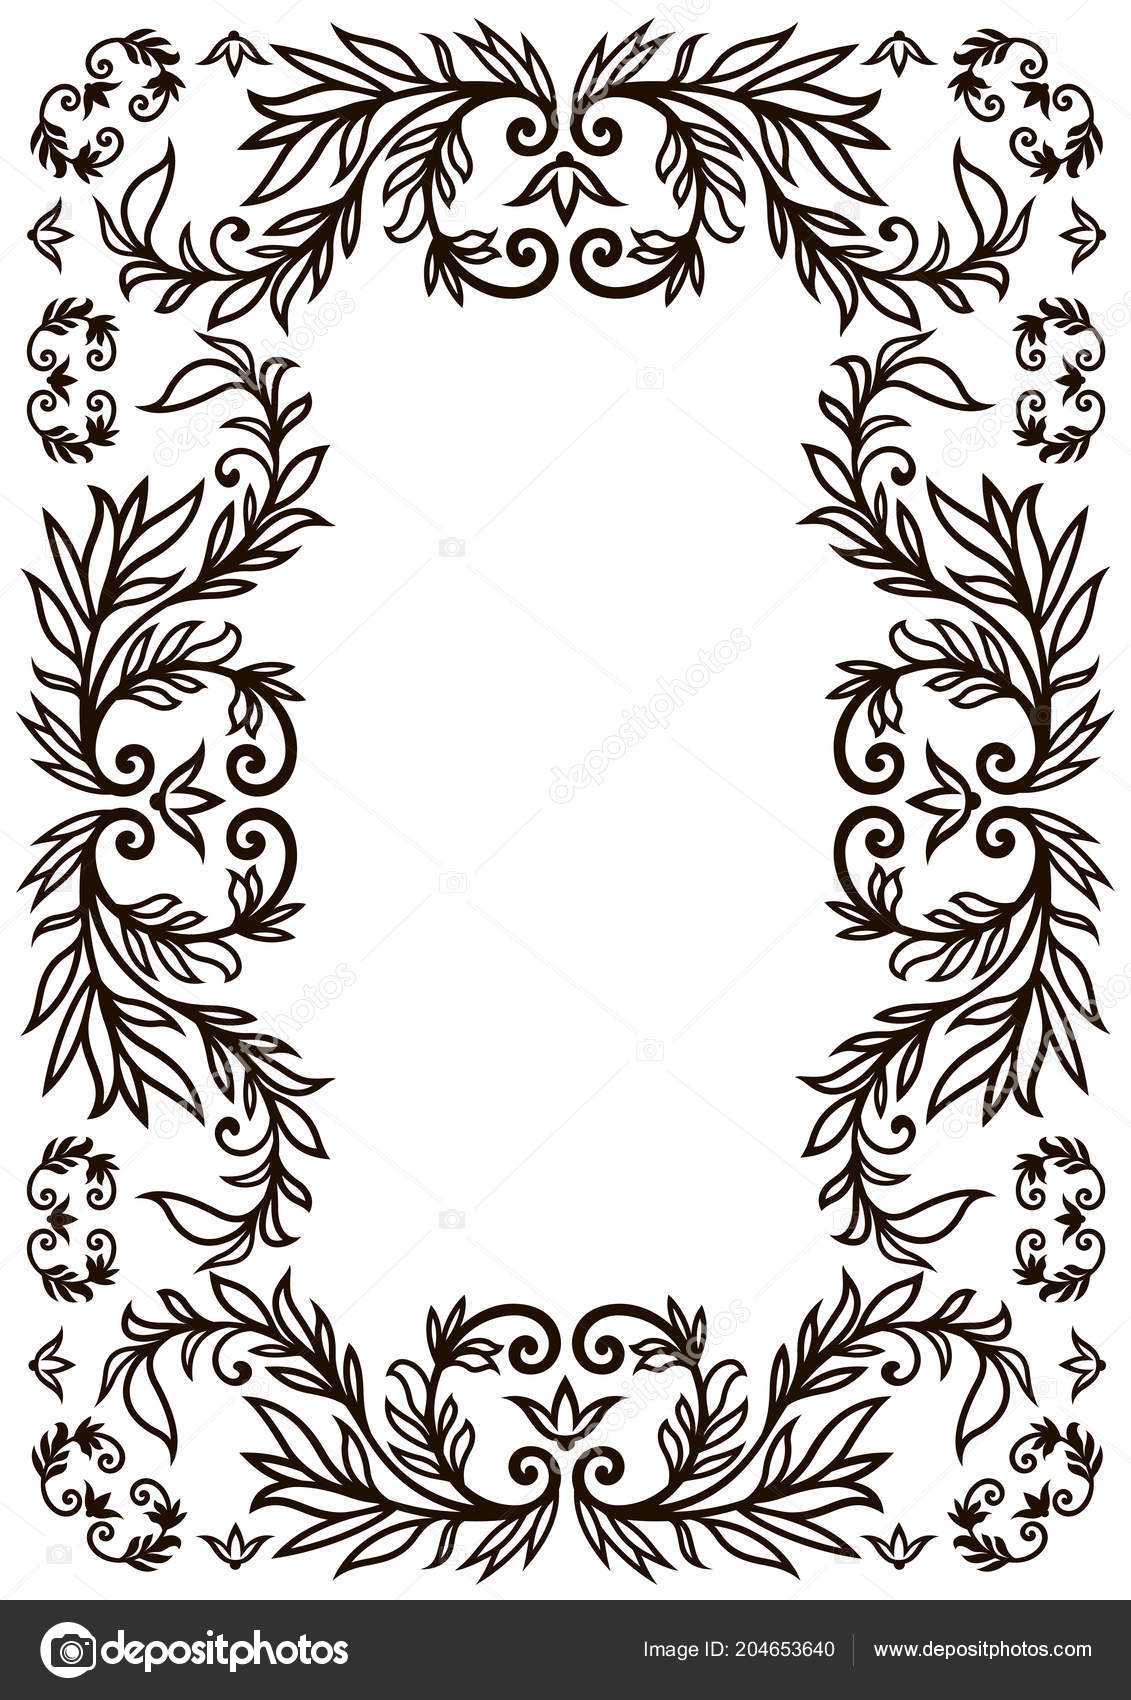 Frame Border Design Template Black White Decorative Vector Border